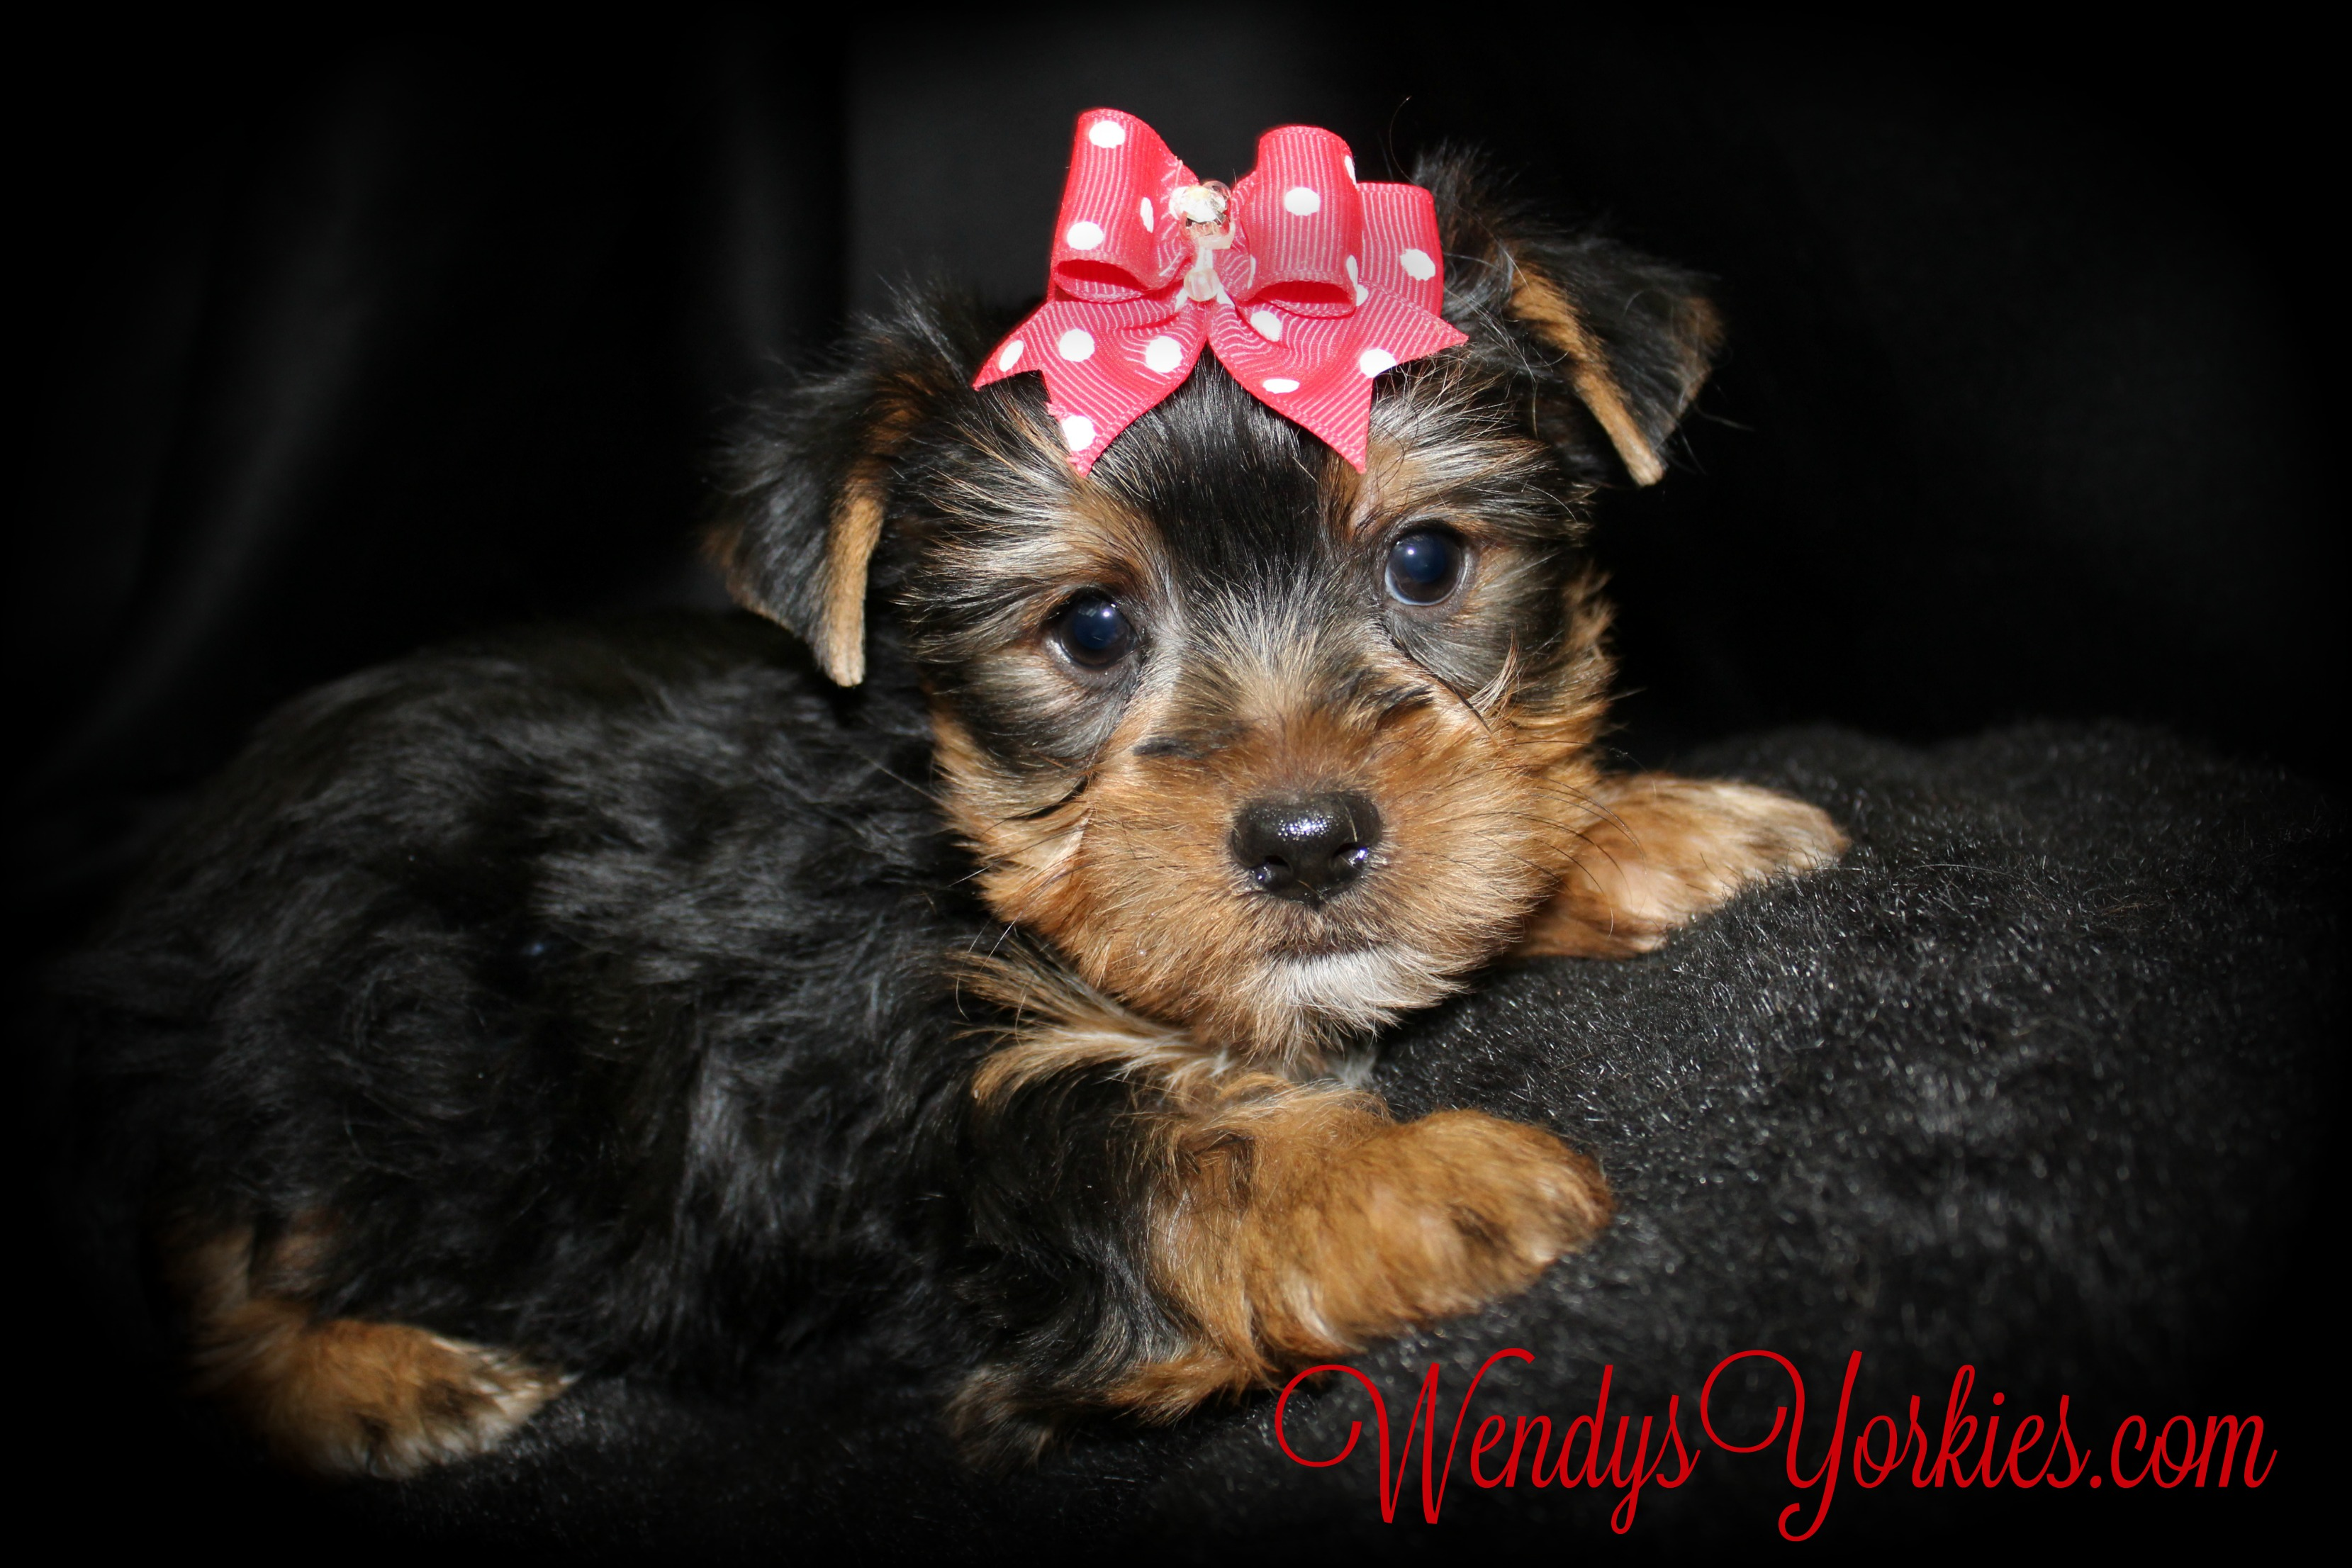 Cutest Yorkie puppy for sale, WendysYorkies.com, Blossom m2